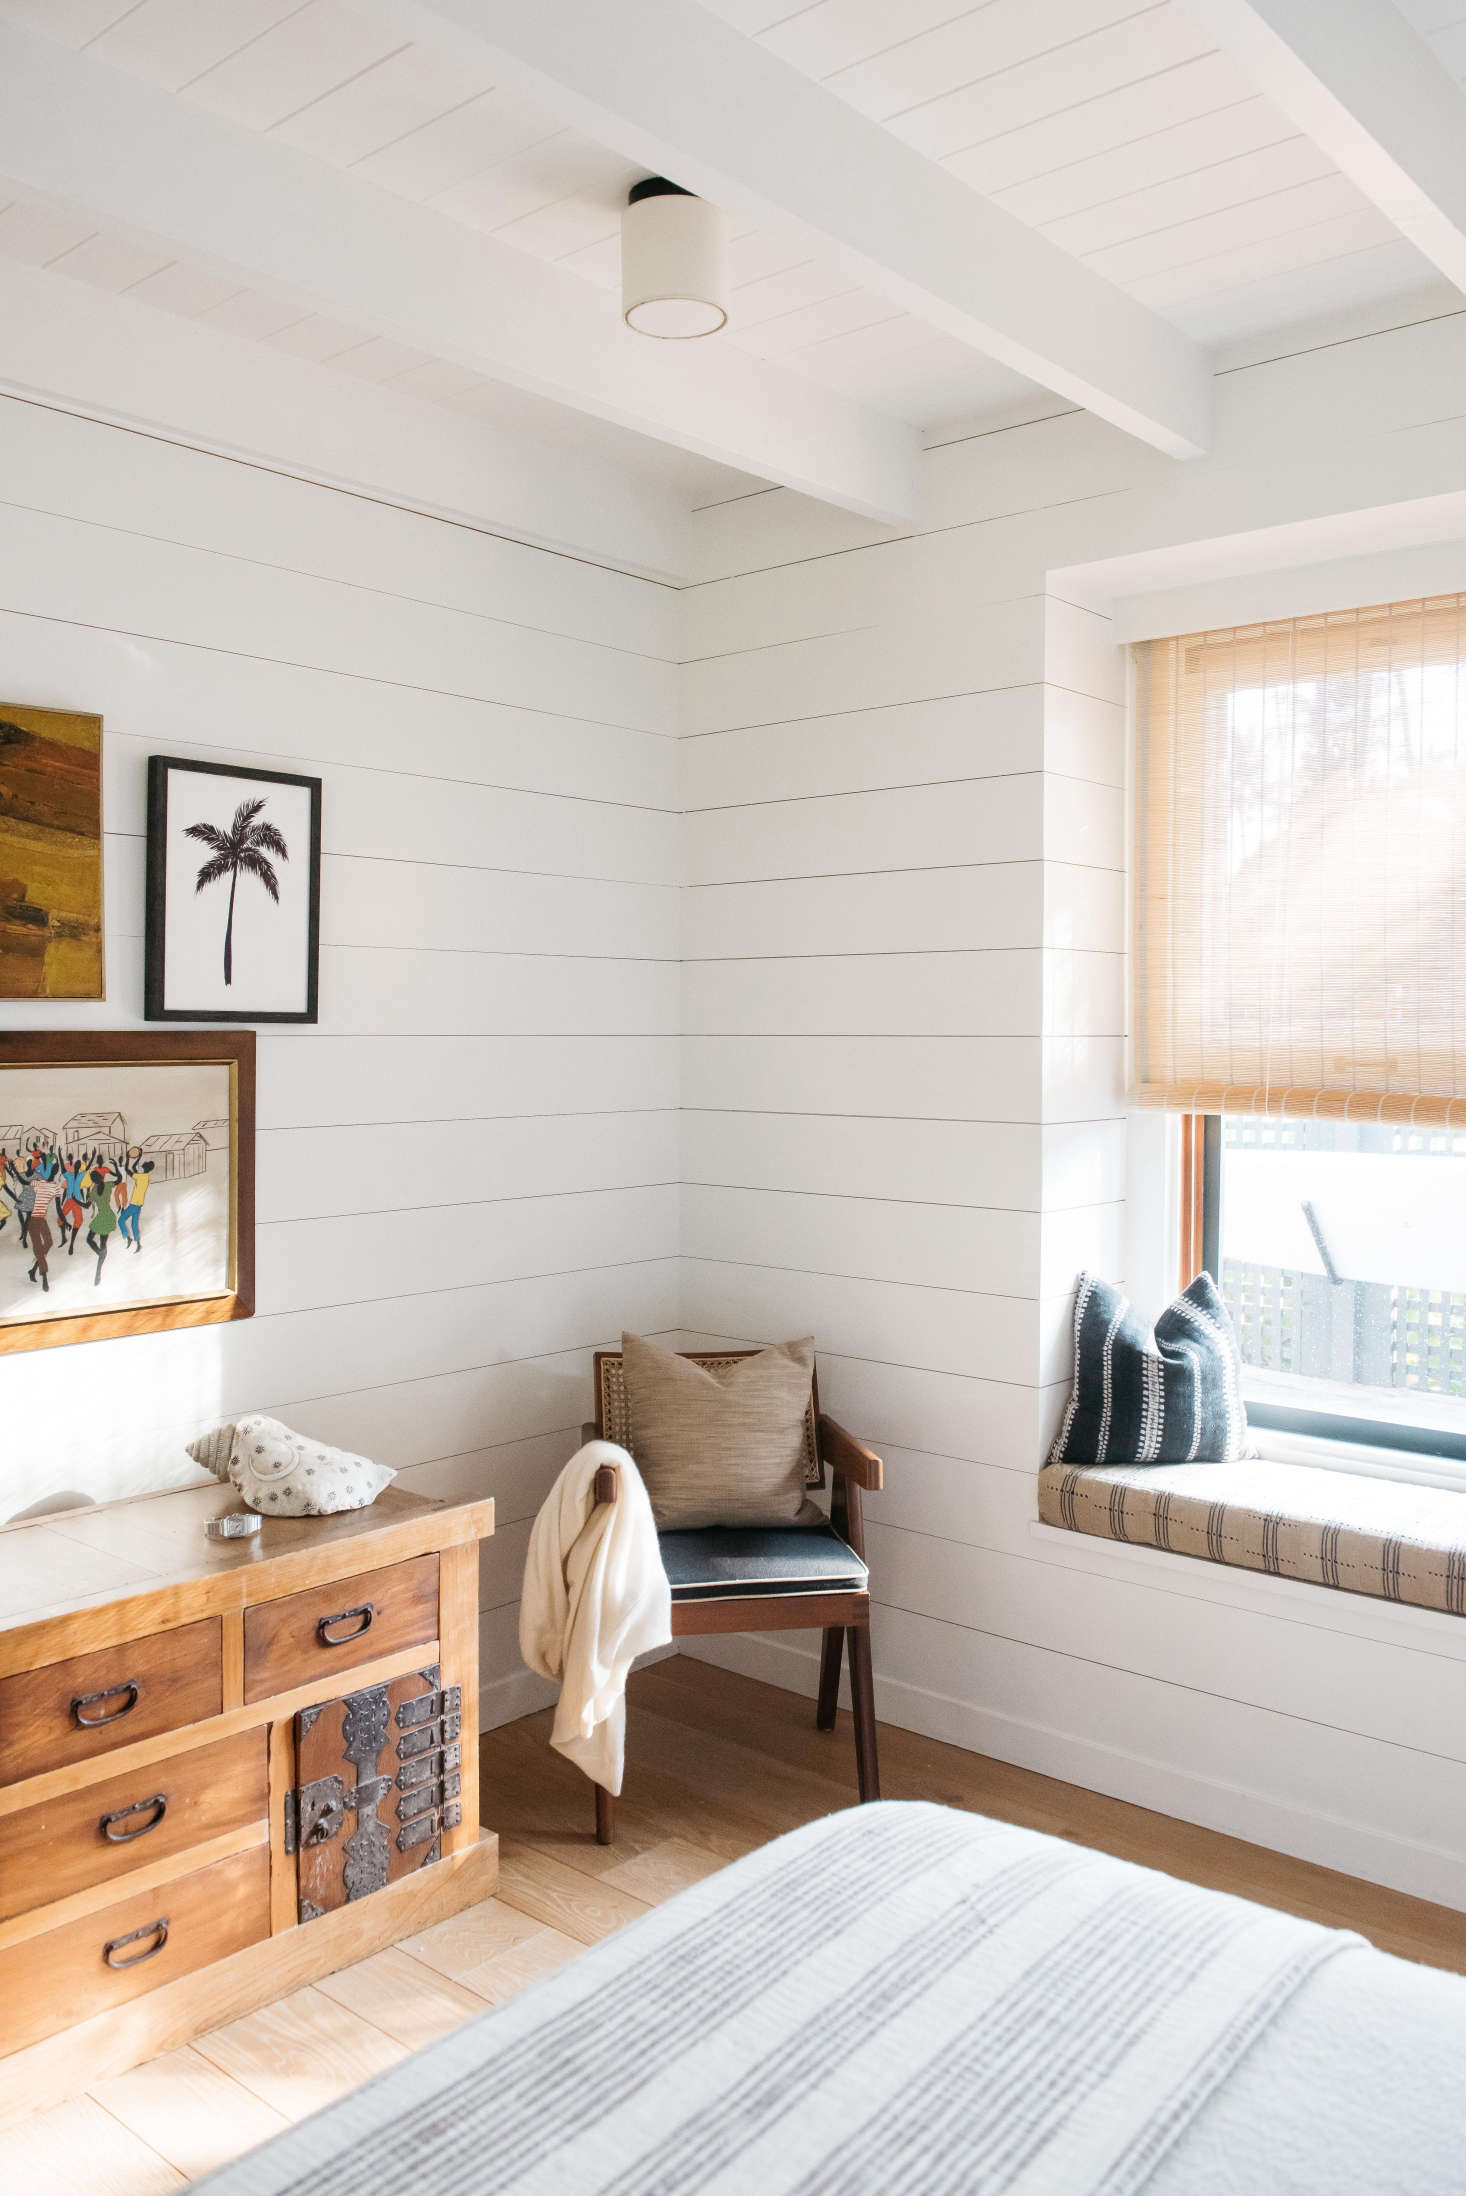 A Vintage Hawaiian Beach Cottage Restored And Ready For Relaxation Remodelista